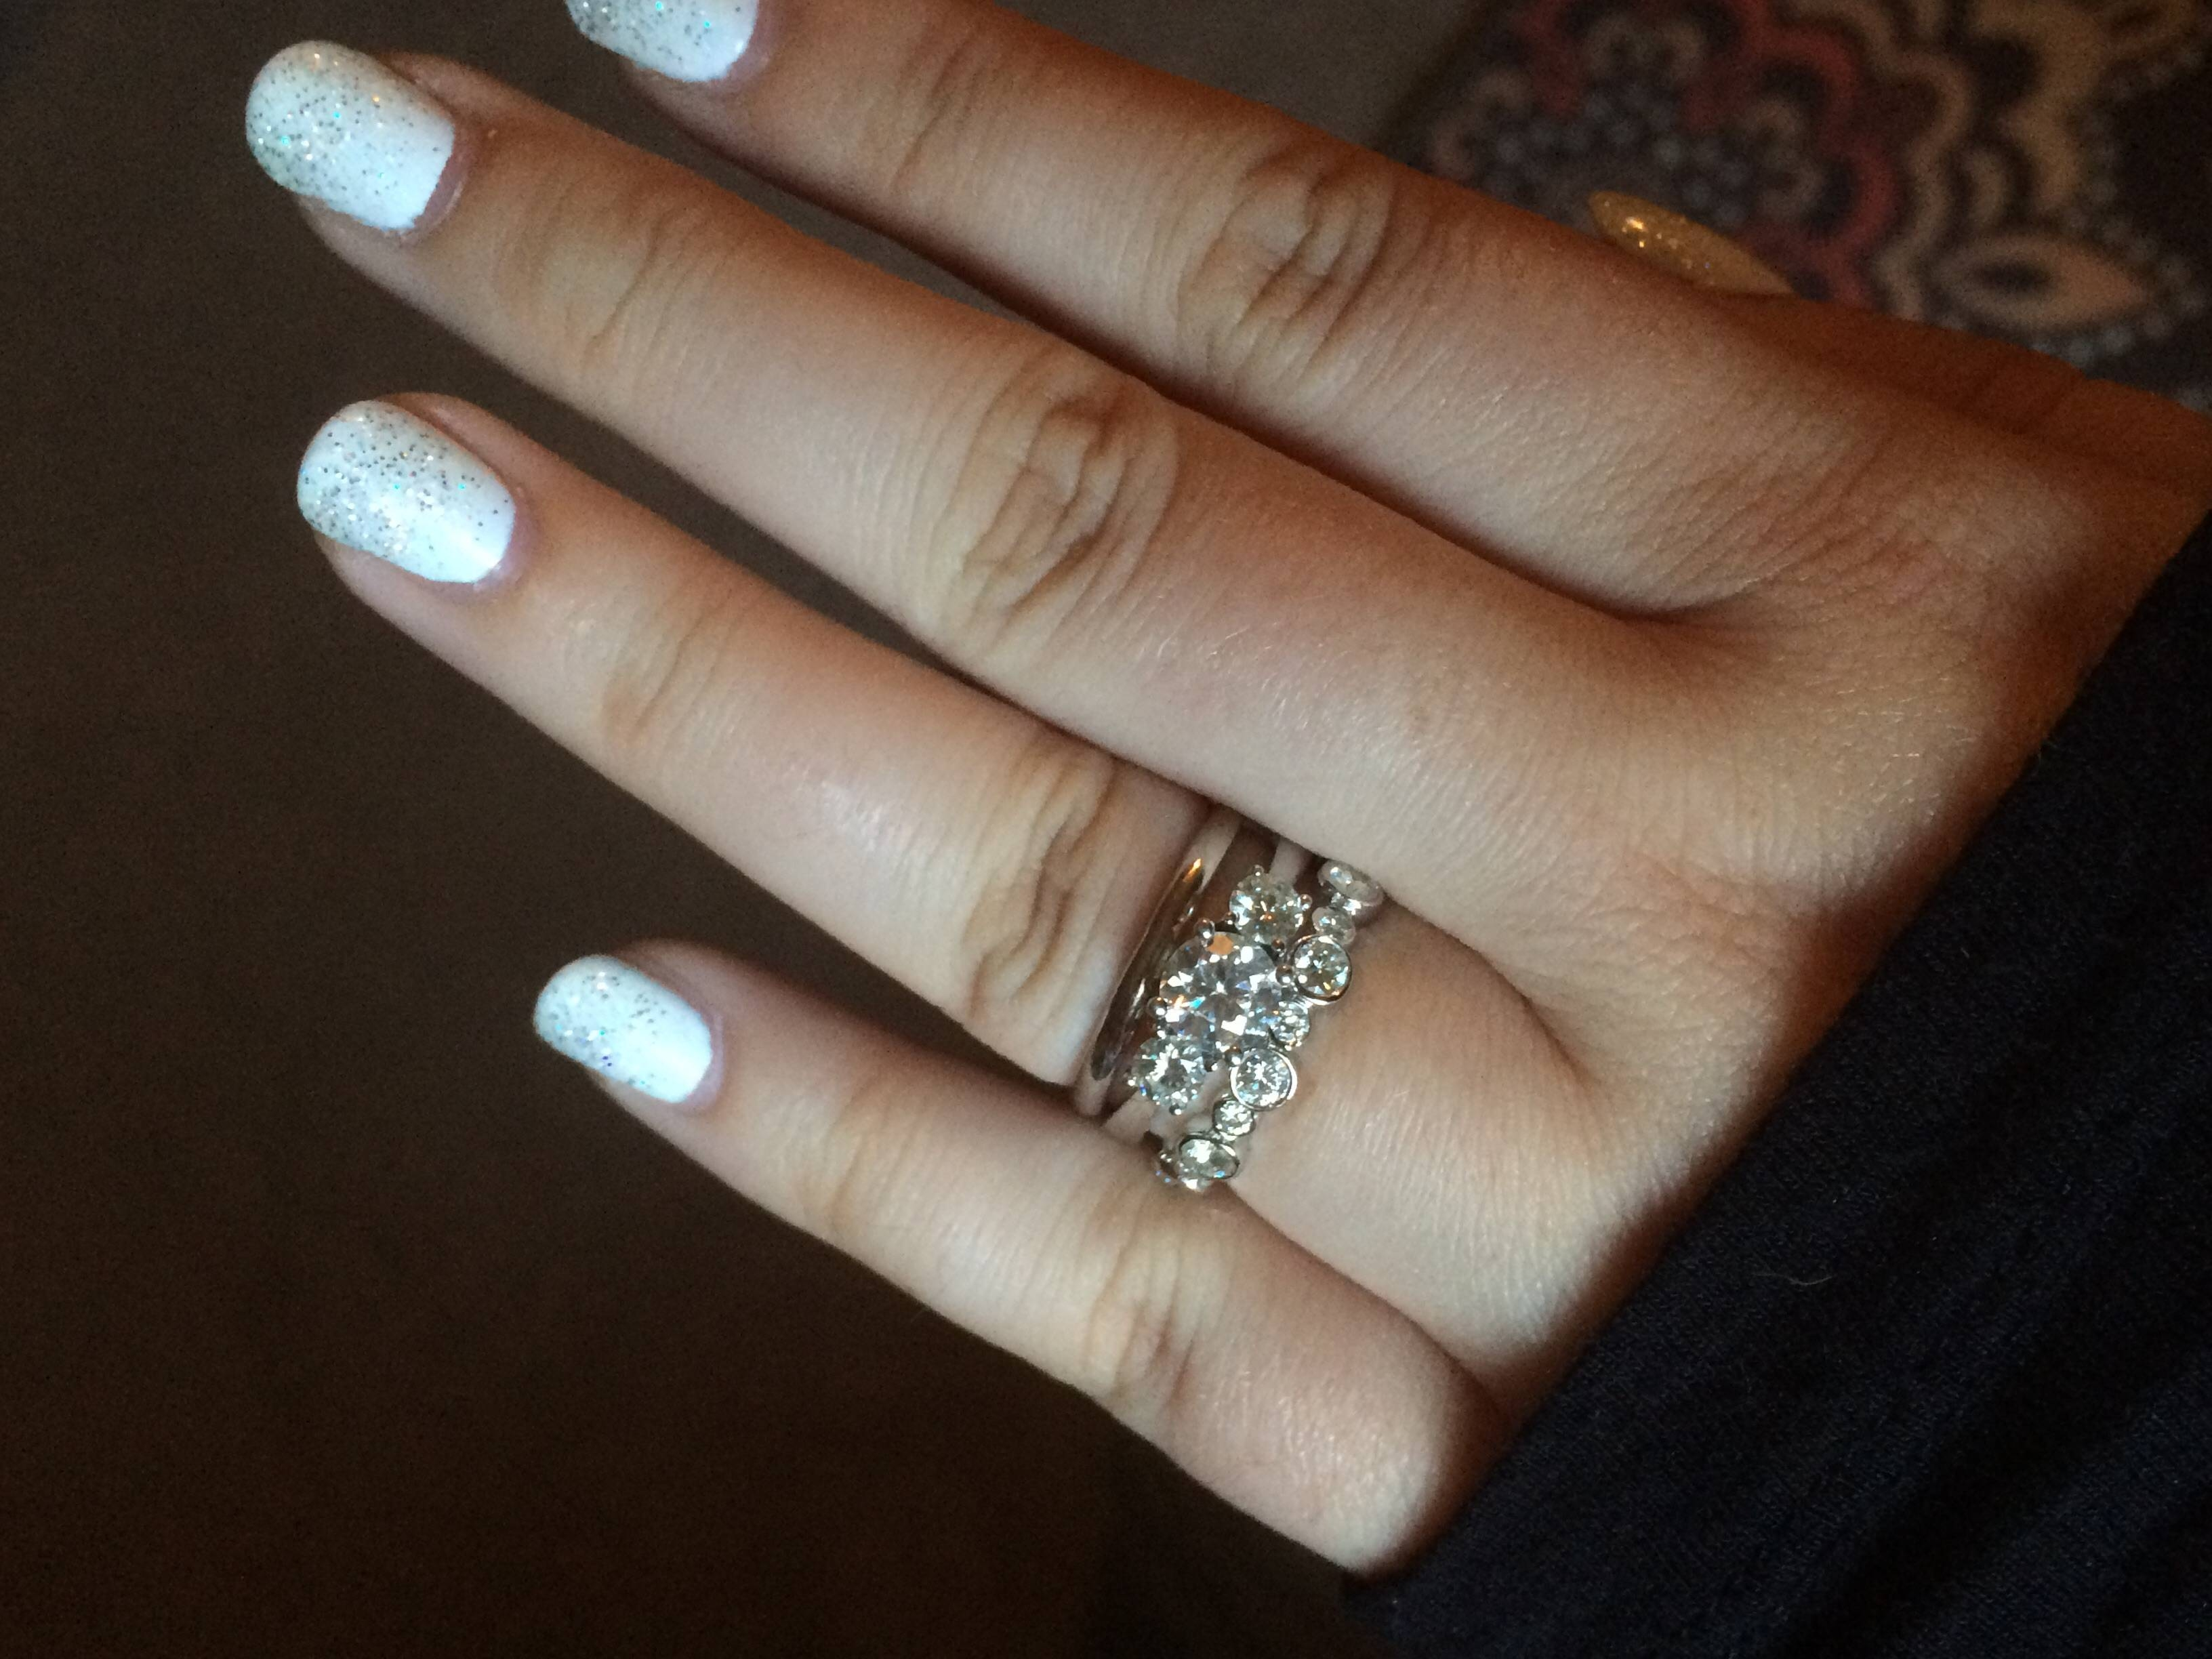 Can I See Your Wedding Band With 3 Stone Engagement Rings With Three Stone Engagement Rings With Wedding Band (View 9 of 15)